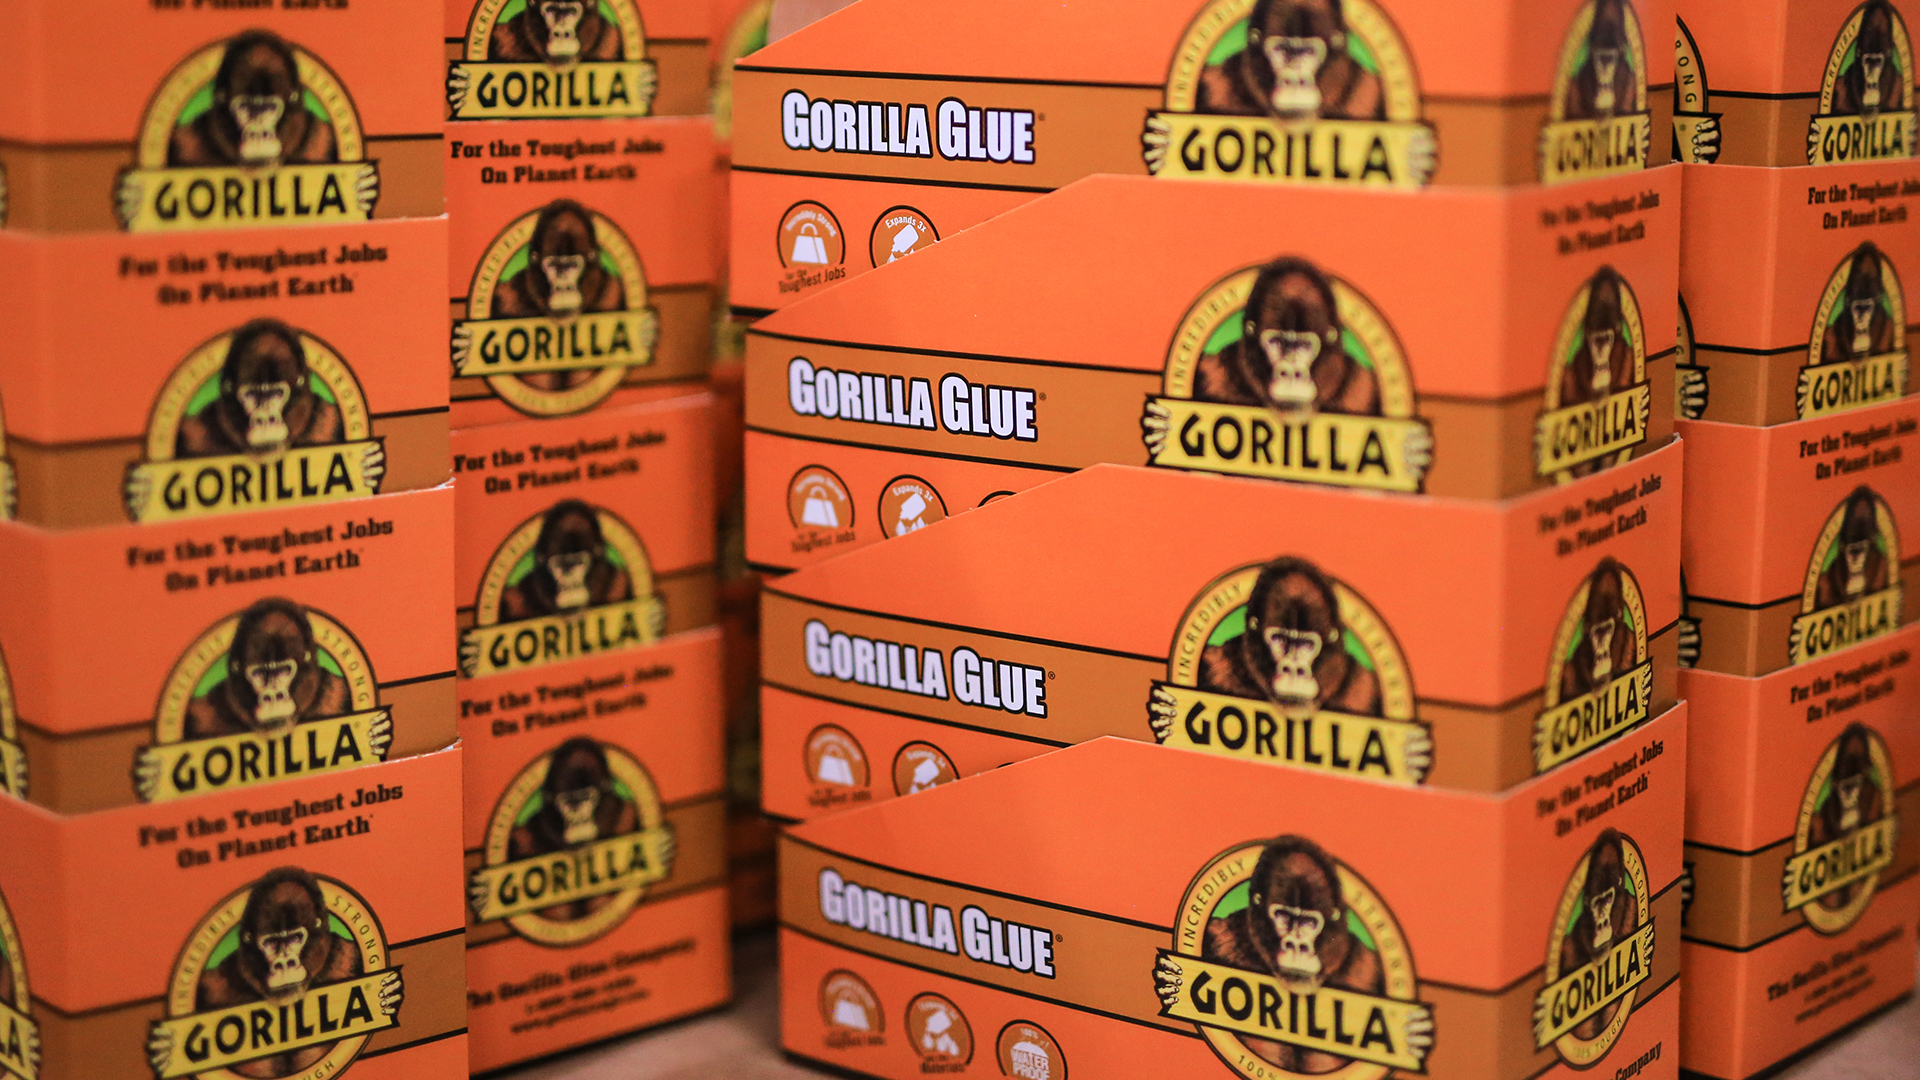 Gorilla glue store production display image